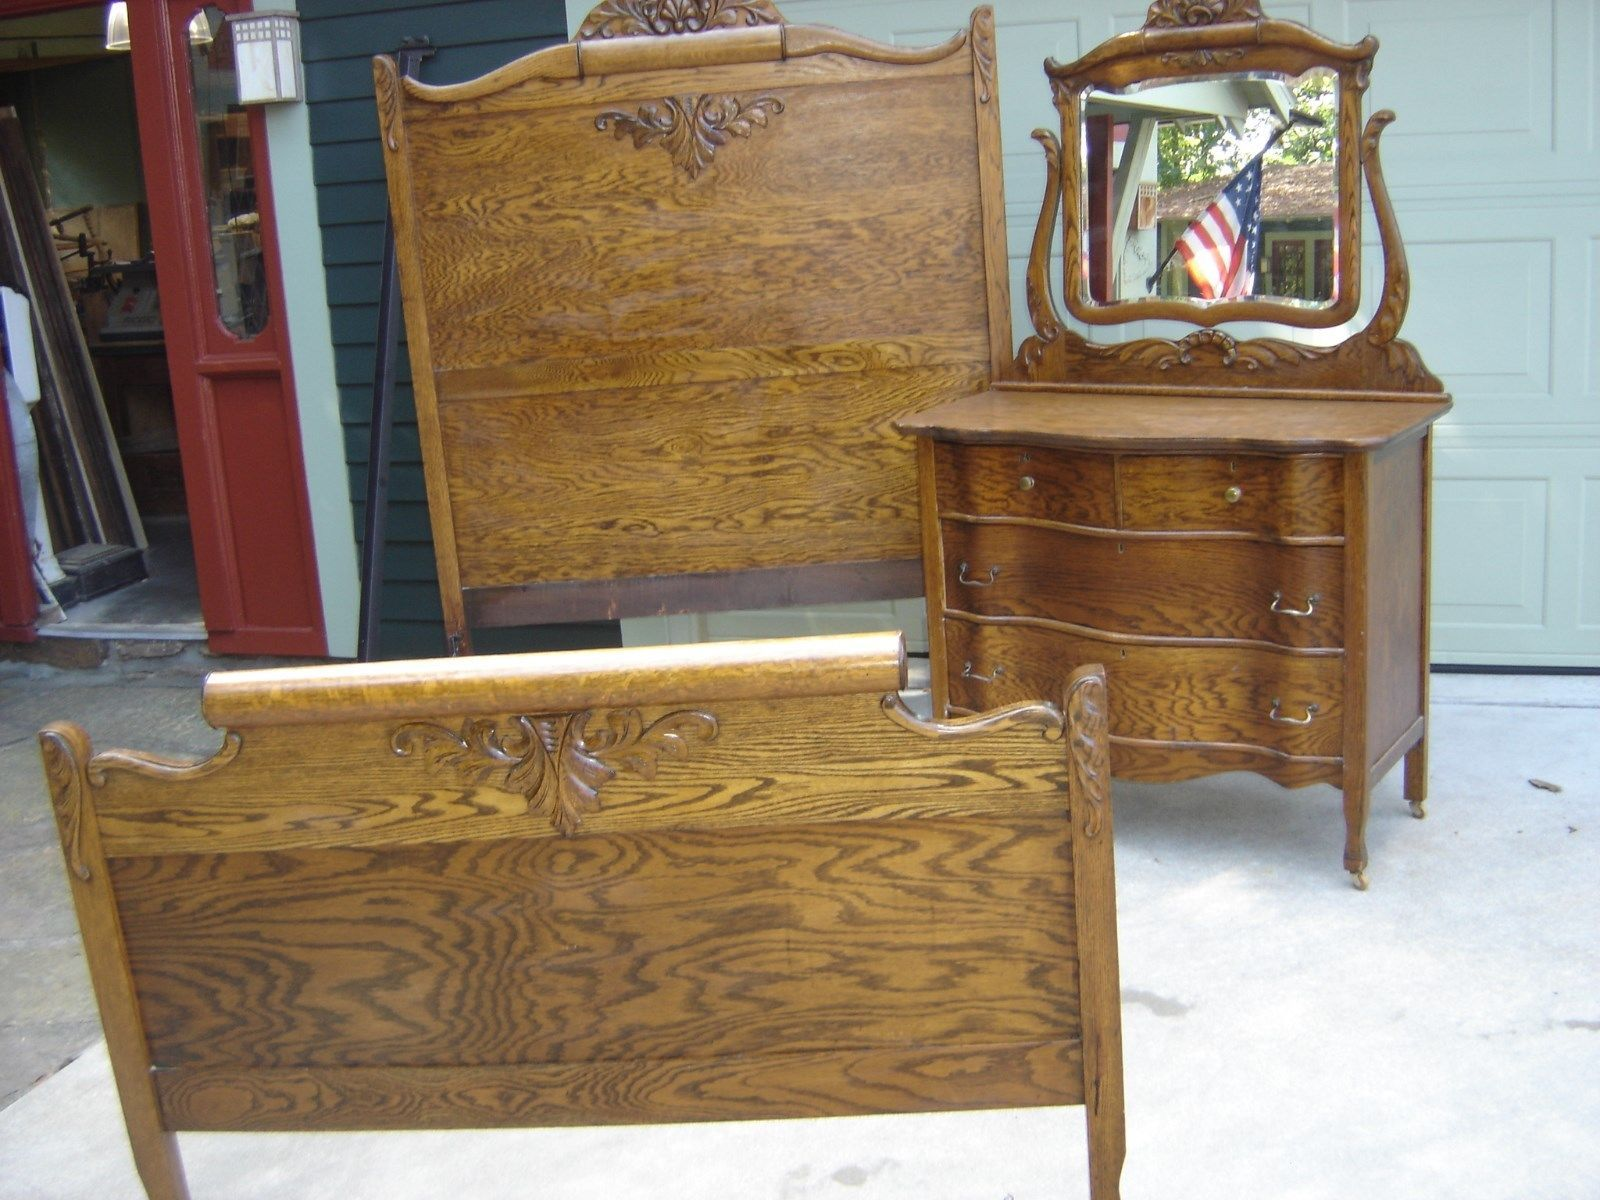 Antique 1 4 Sawn Oak Tall Bed W Matching Dresser Lied Carving 8880